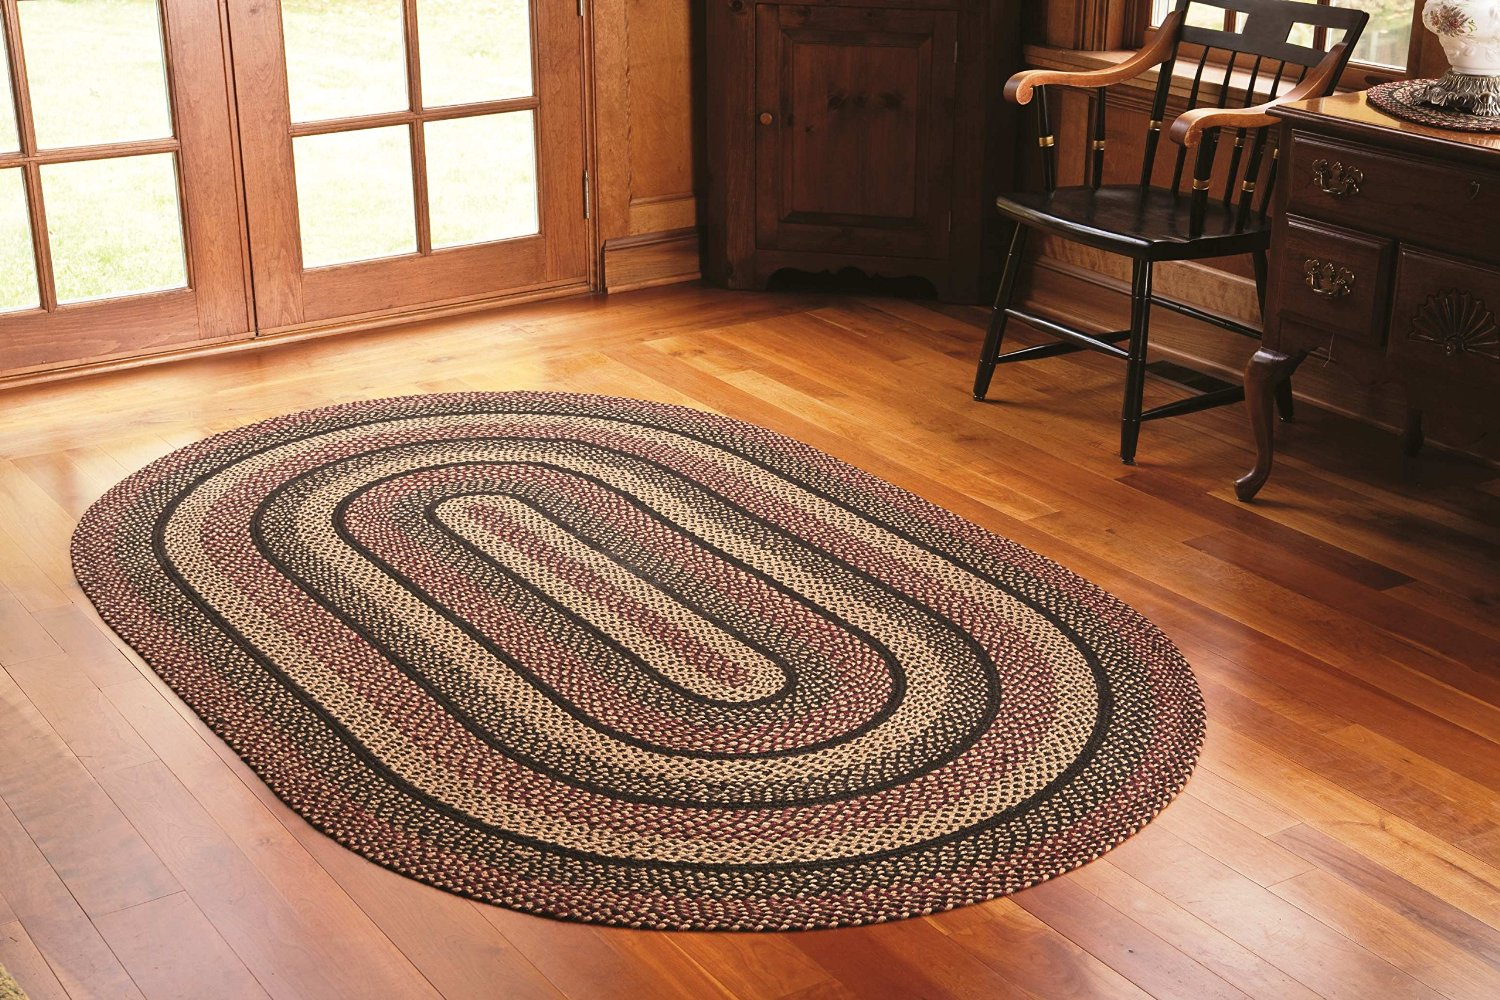 big oval braided rugs in multicolor on wooden floor for floor decor ideas